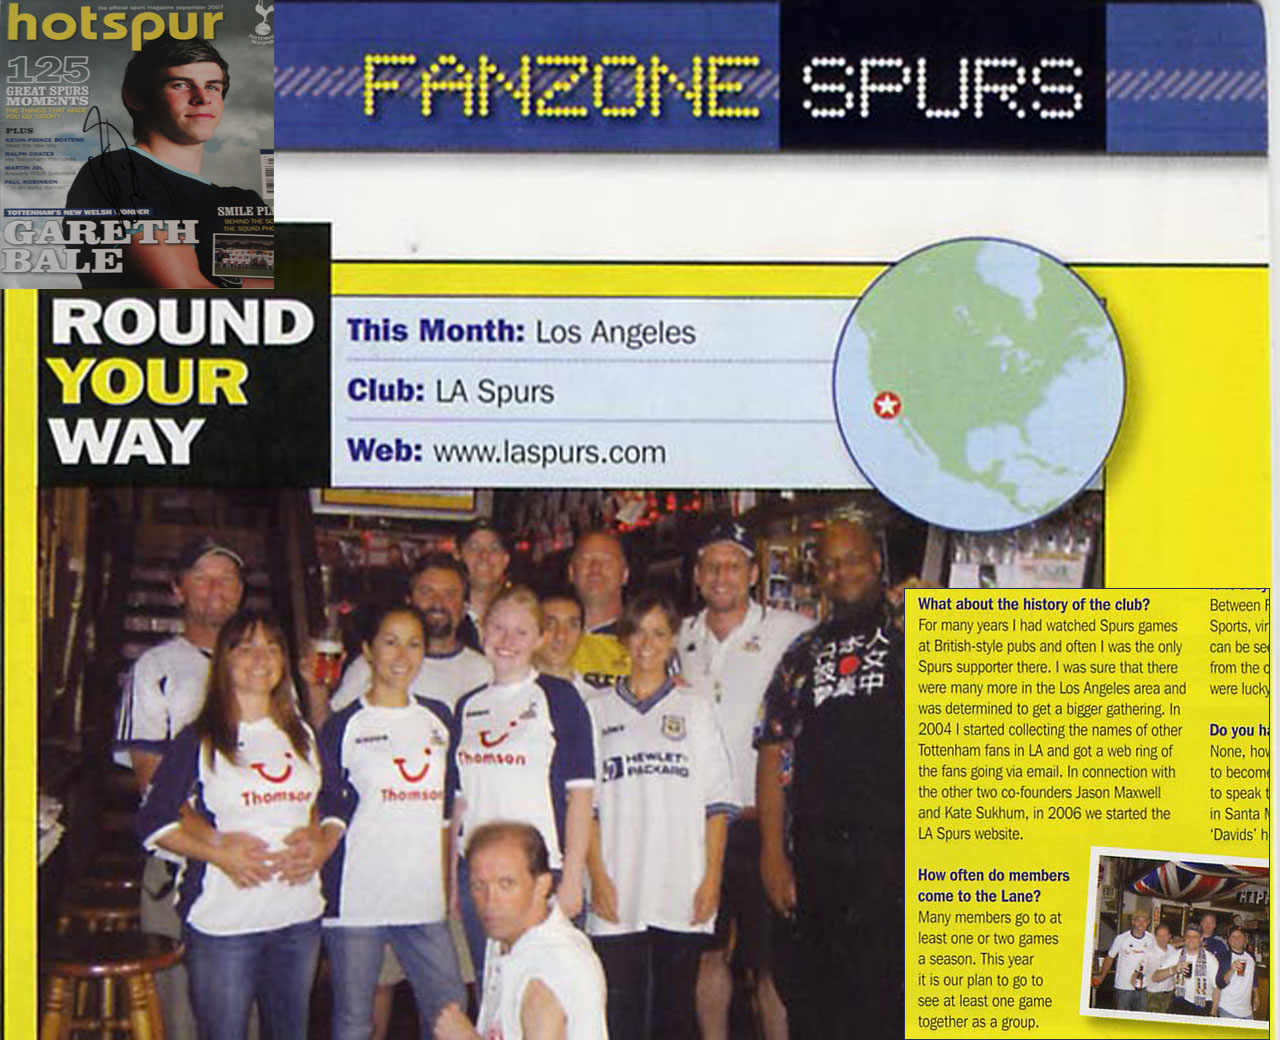 L.A. Spurs featured in September 2007 Hotspur Magazine